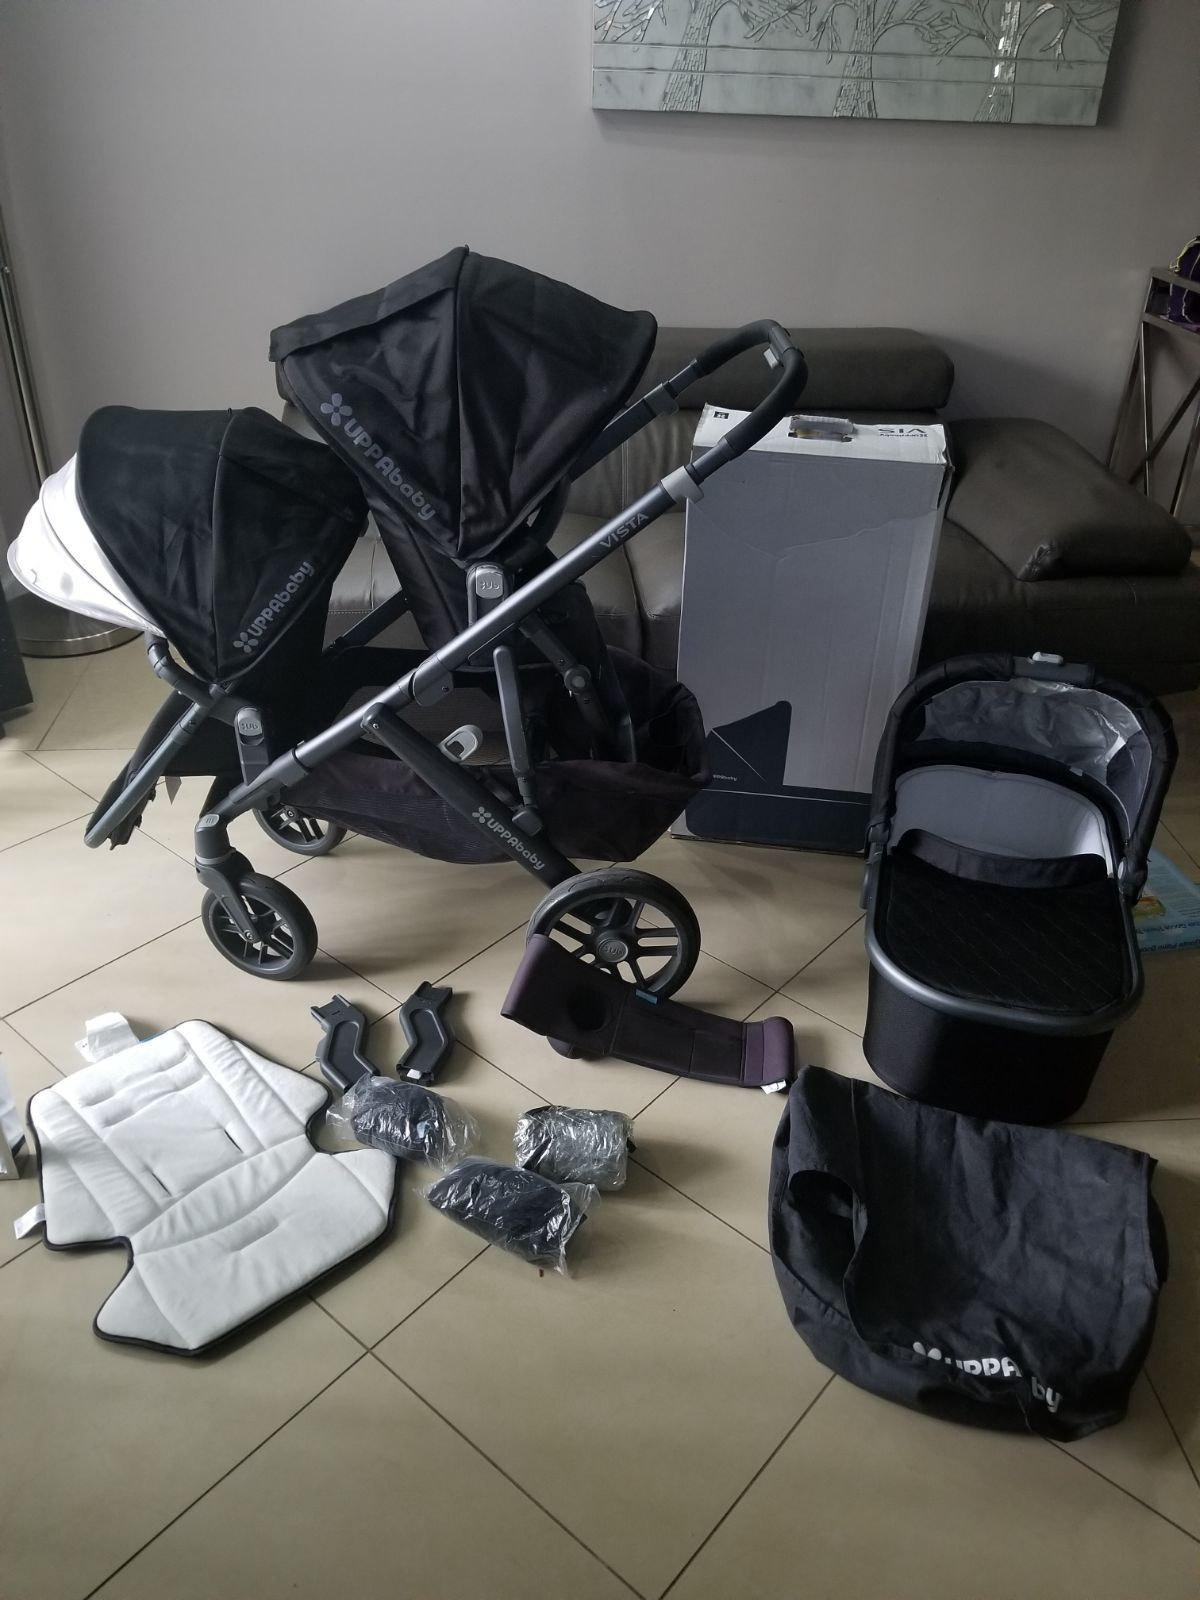 All accessories are included Stroller, toddler seat and